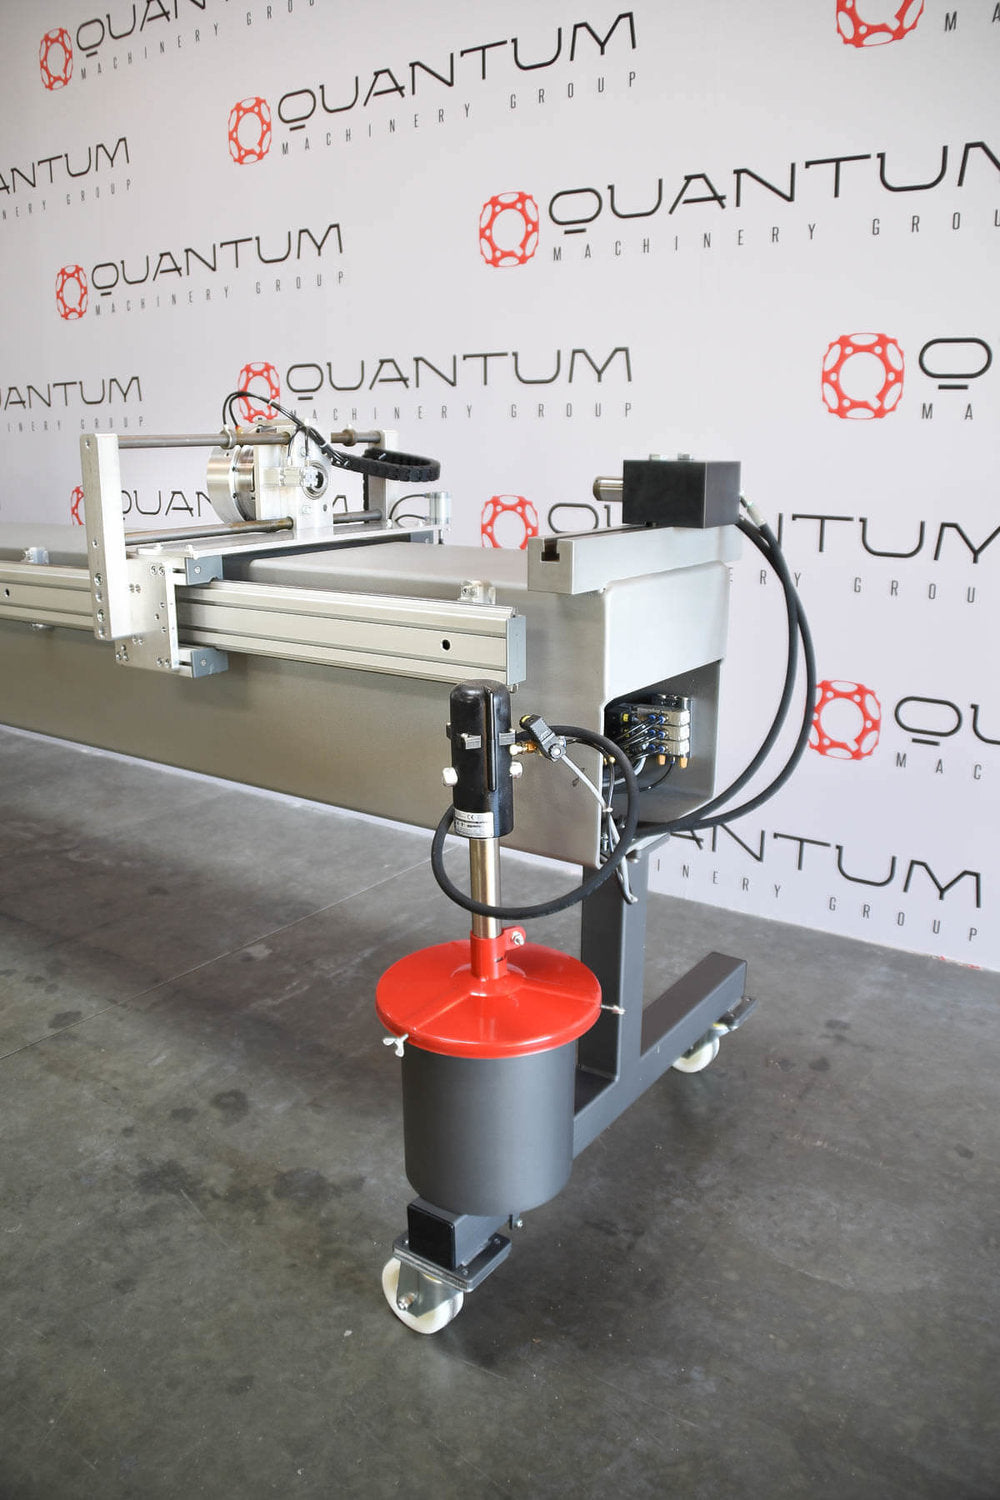 QMS-60 Mandrel Rotary Bender with Carriage on Wheels